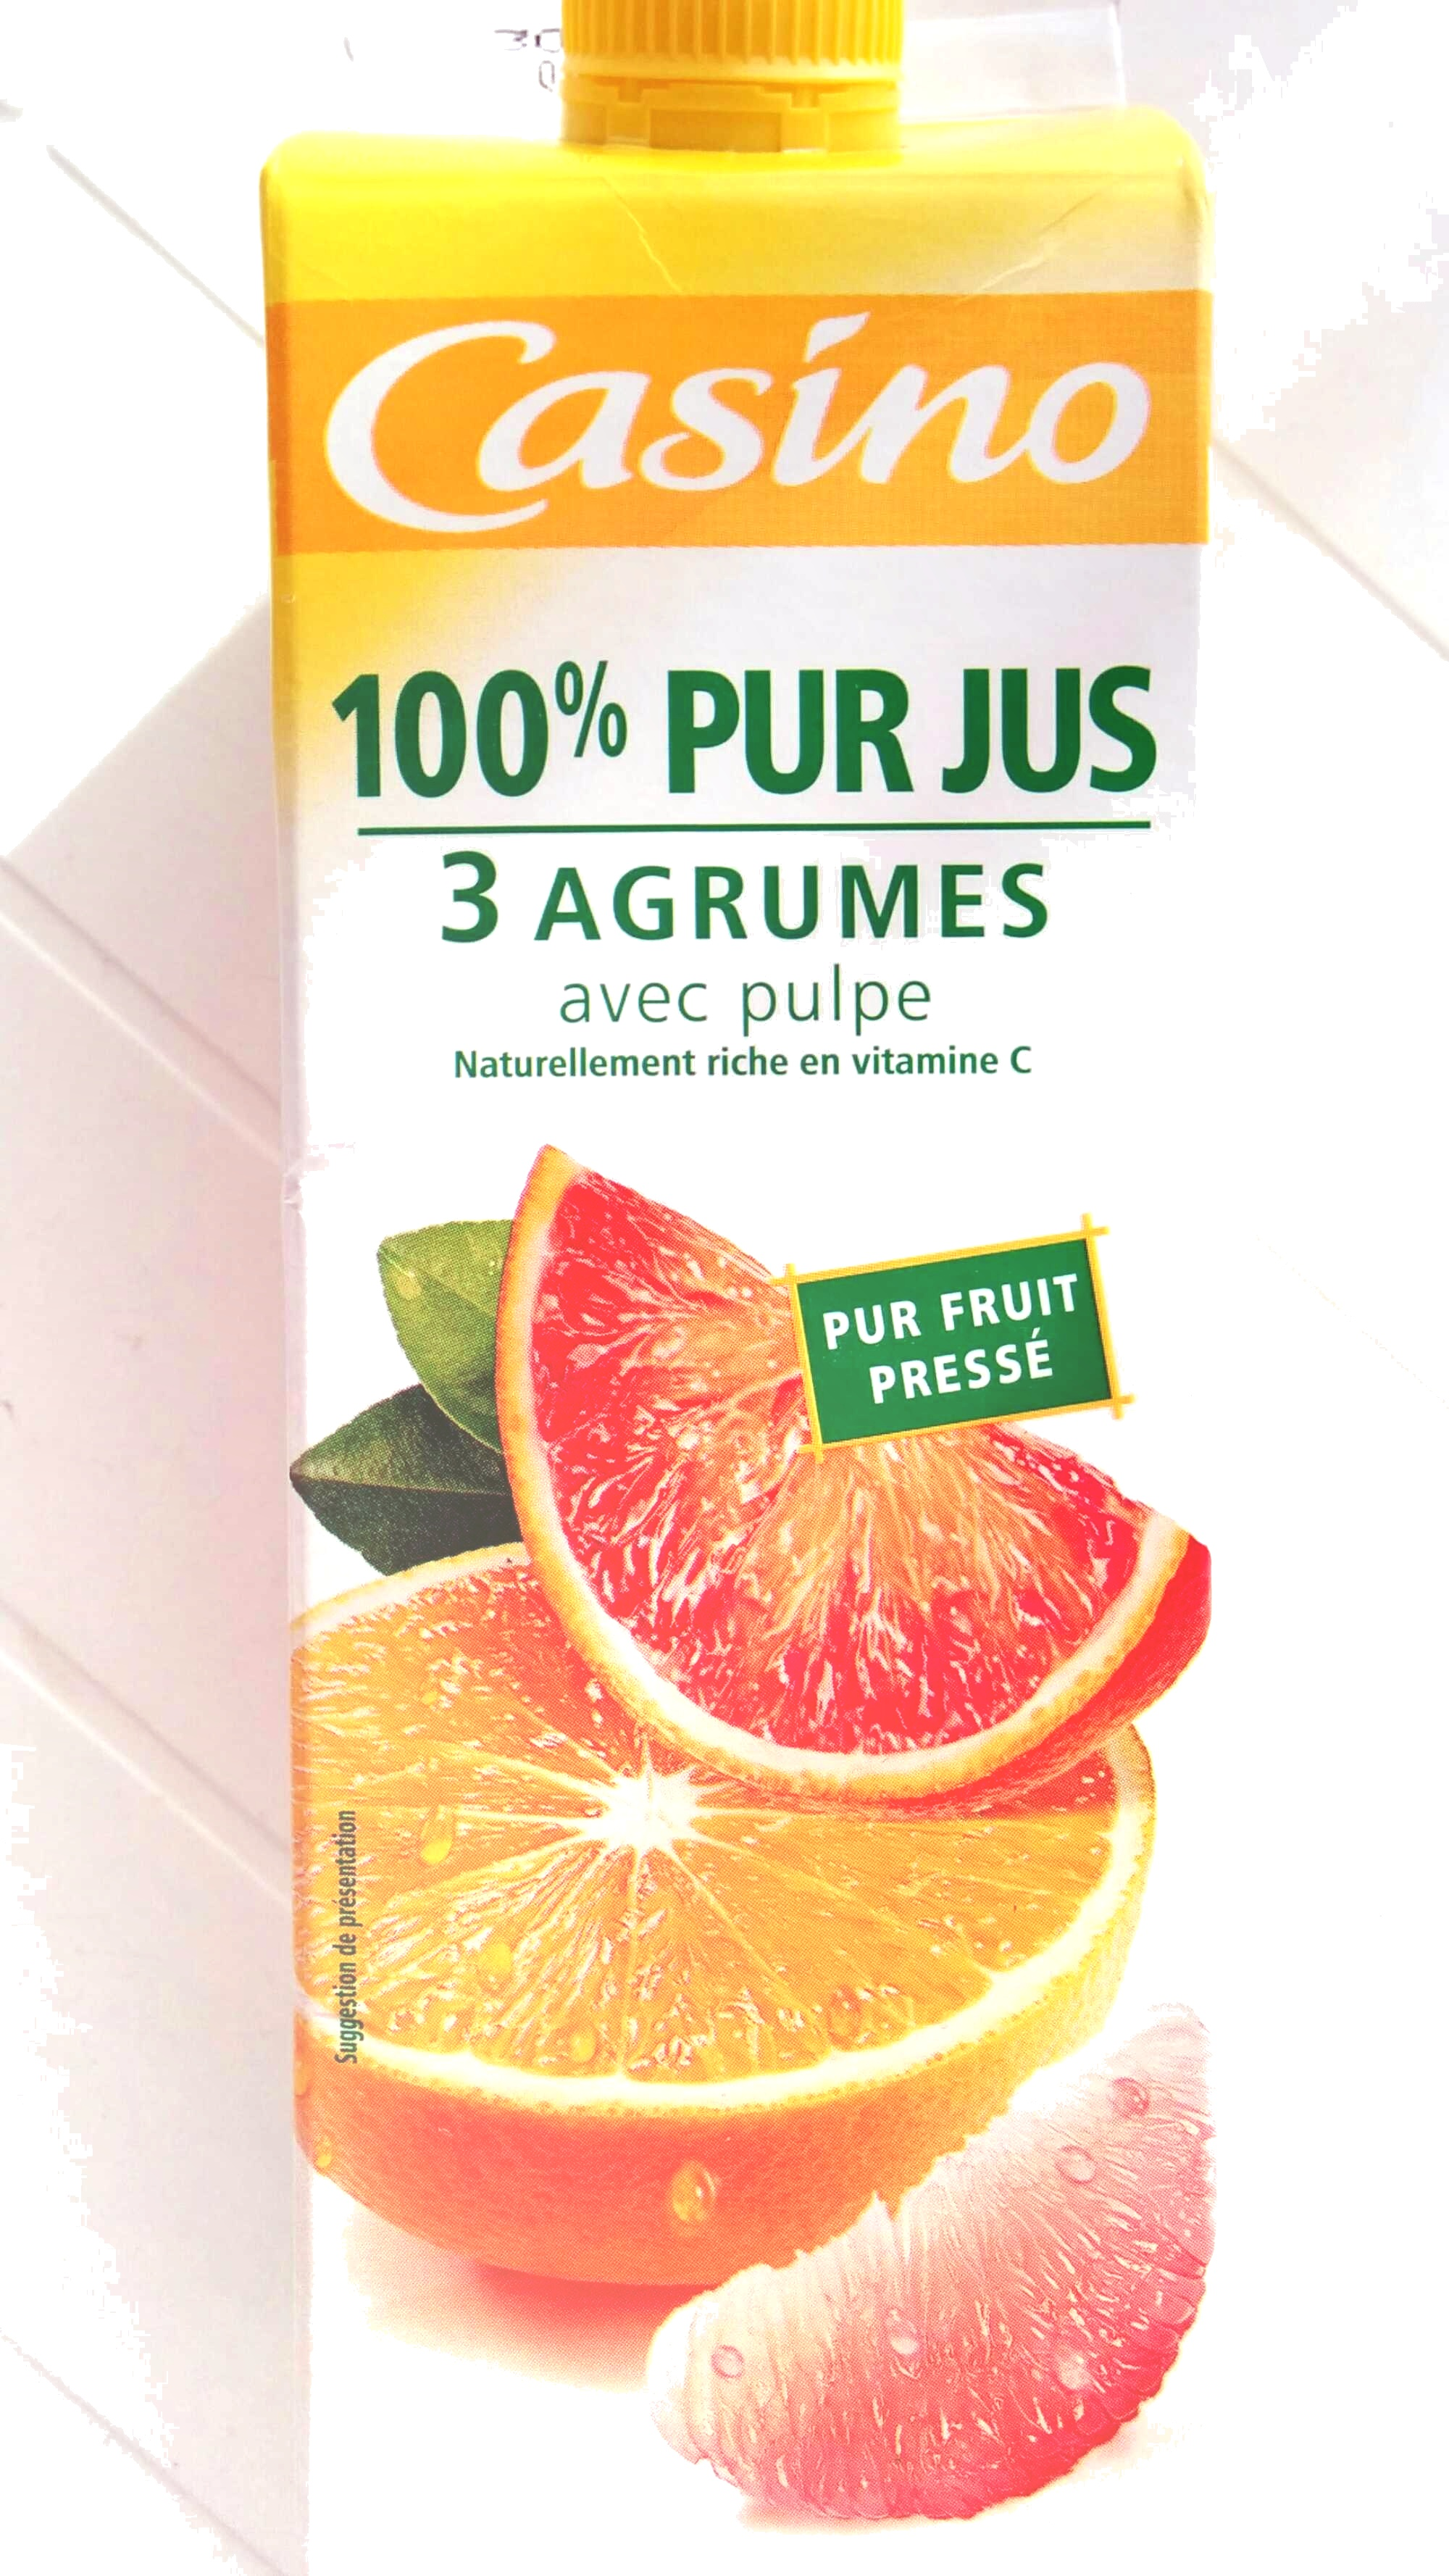 100% Pur jus 3 Agrumes avec Pulpe - Product